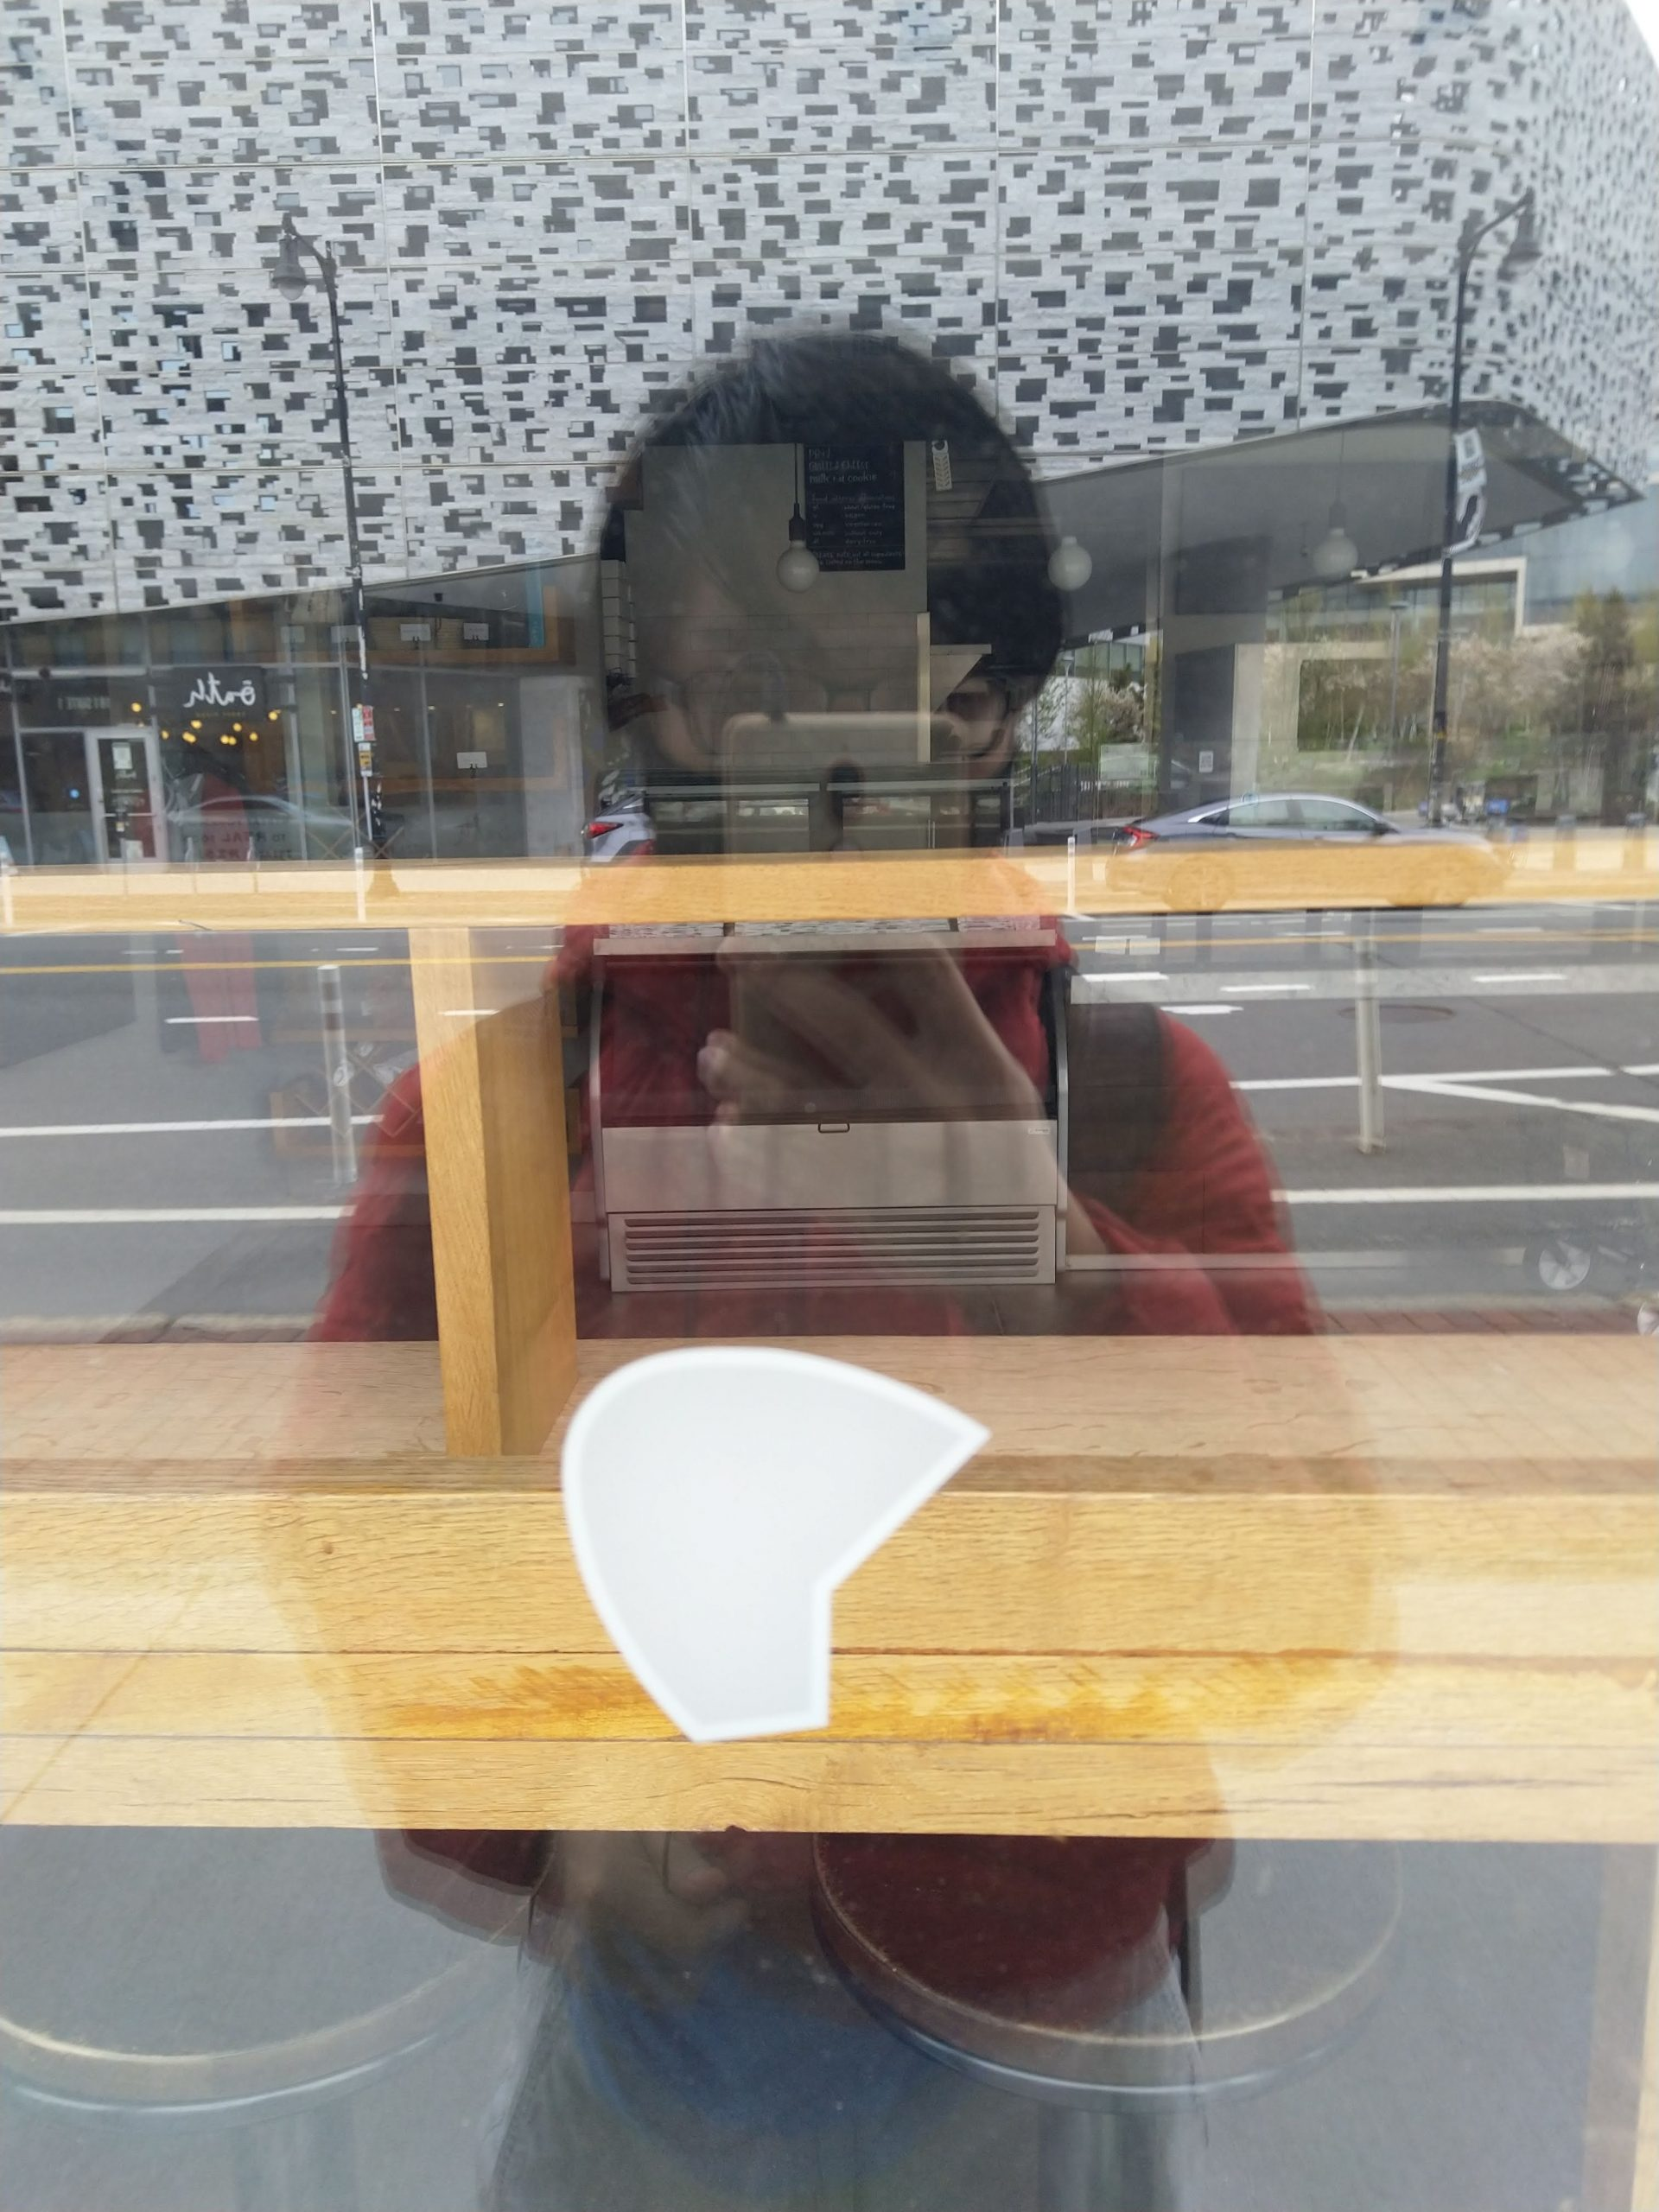 reflection of myself in a shop mirror